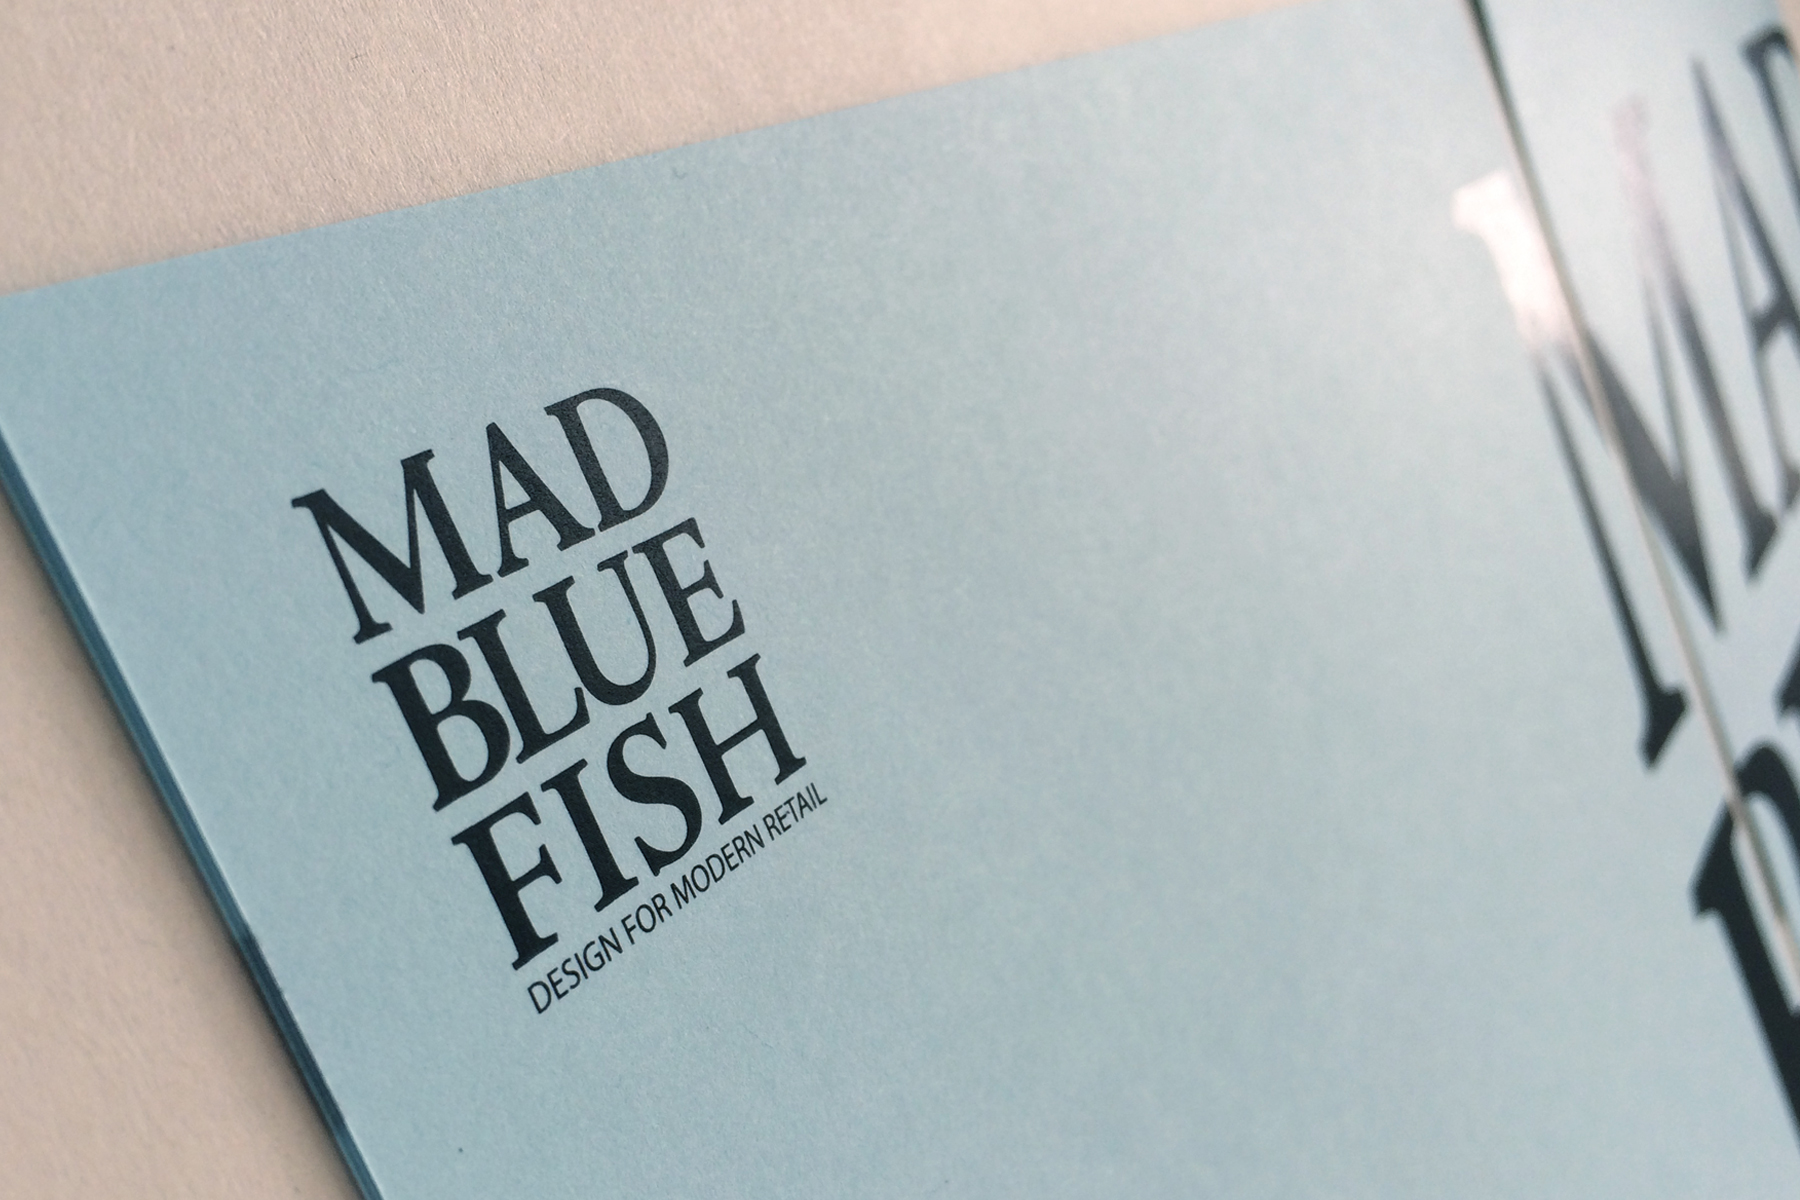 Mad-Blue-Fish.jpg